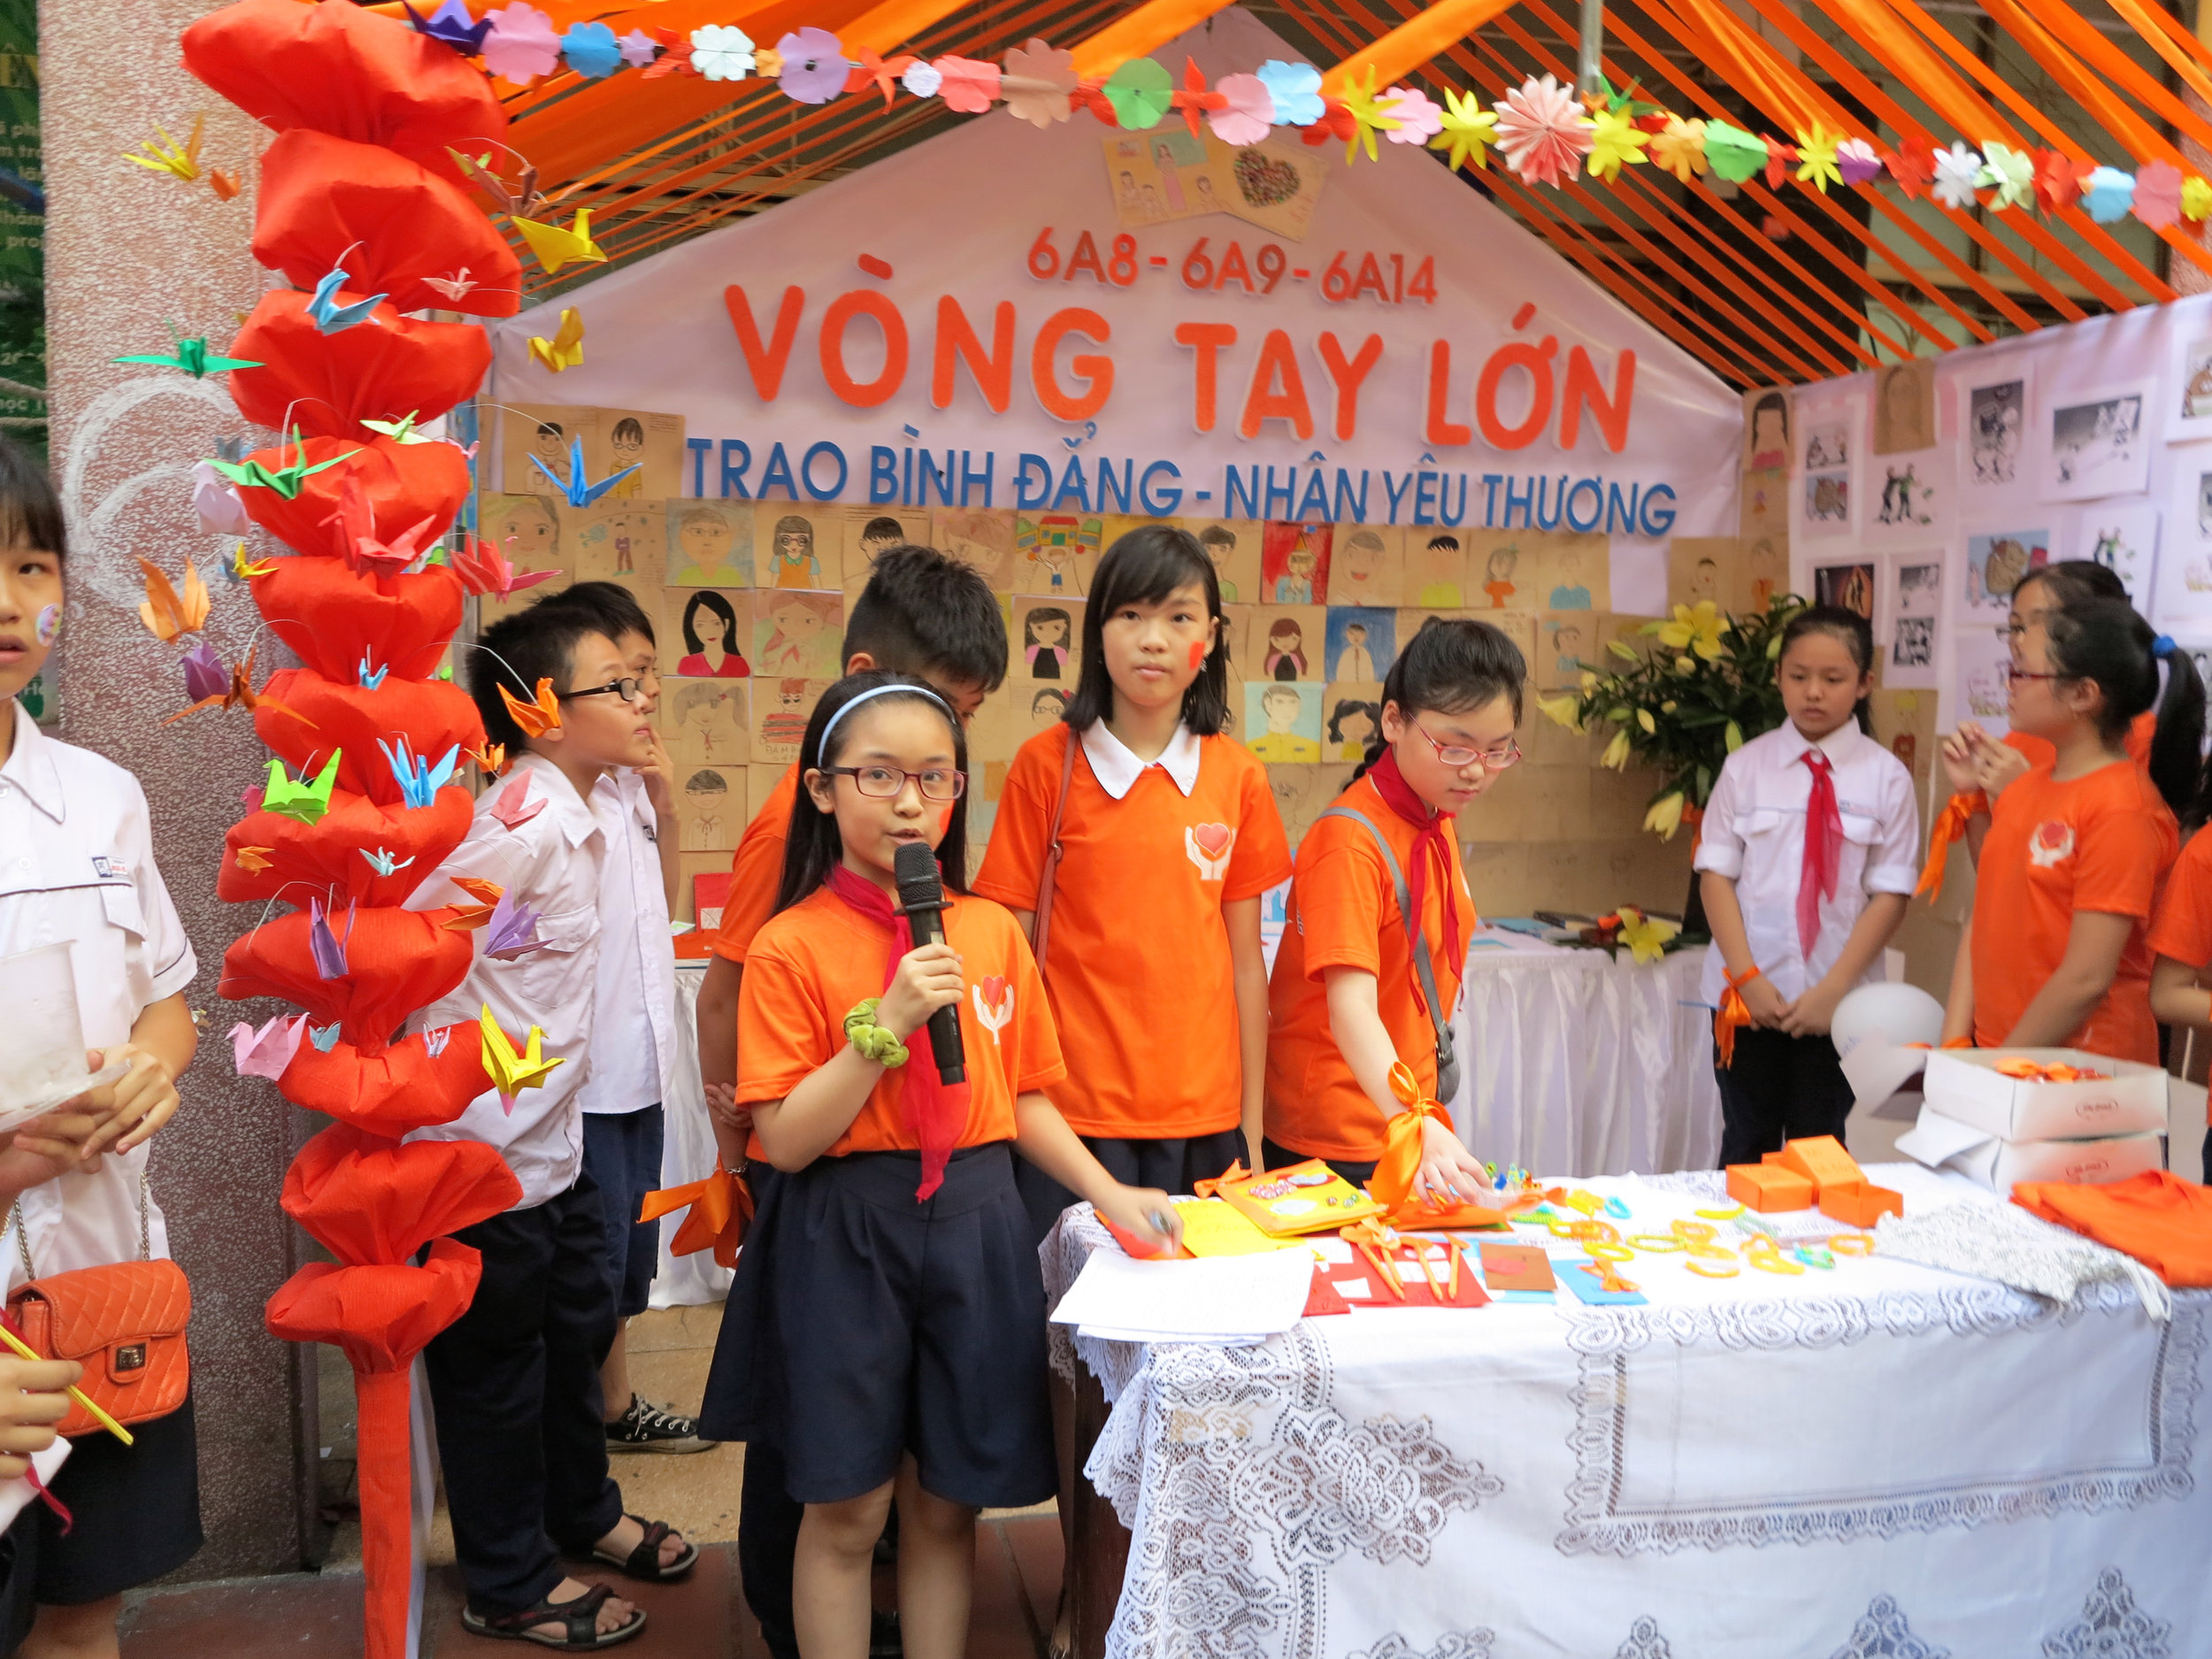 Students in Le Loi secondary school participate in an activity to learn about the Gender Responsive School Model Project. Grantee: Plan Viet Nam.Photo: Trinh Thi An Binh